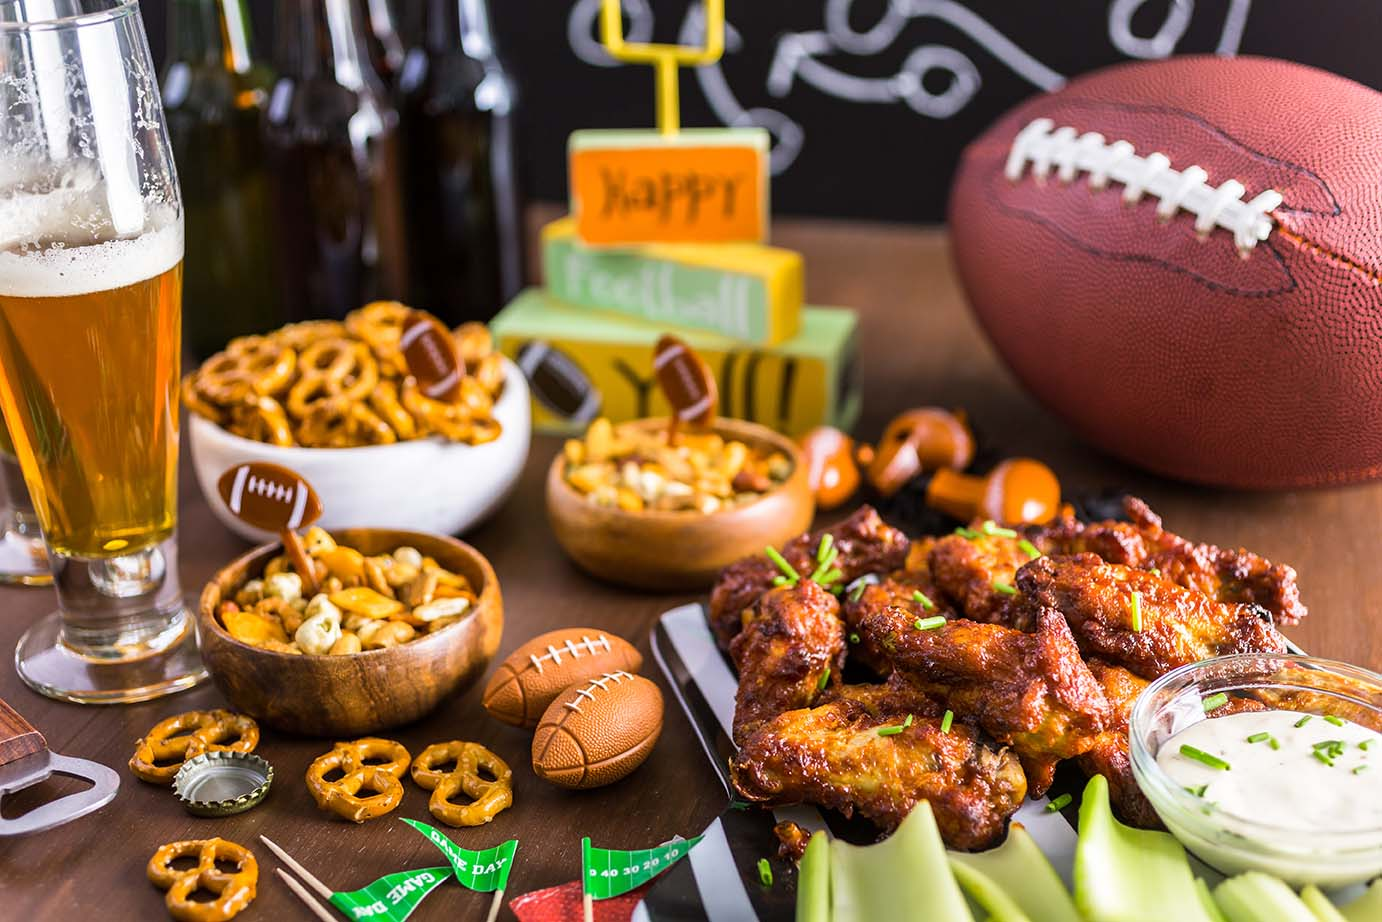 25 Easy Super Bowl Party Recipes via @mermaidsandmojitos